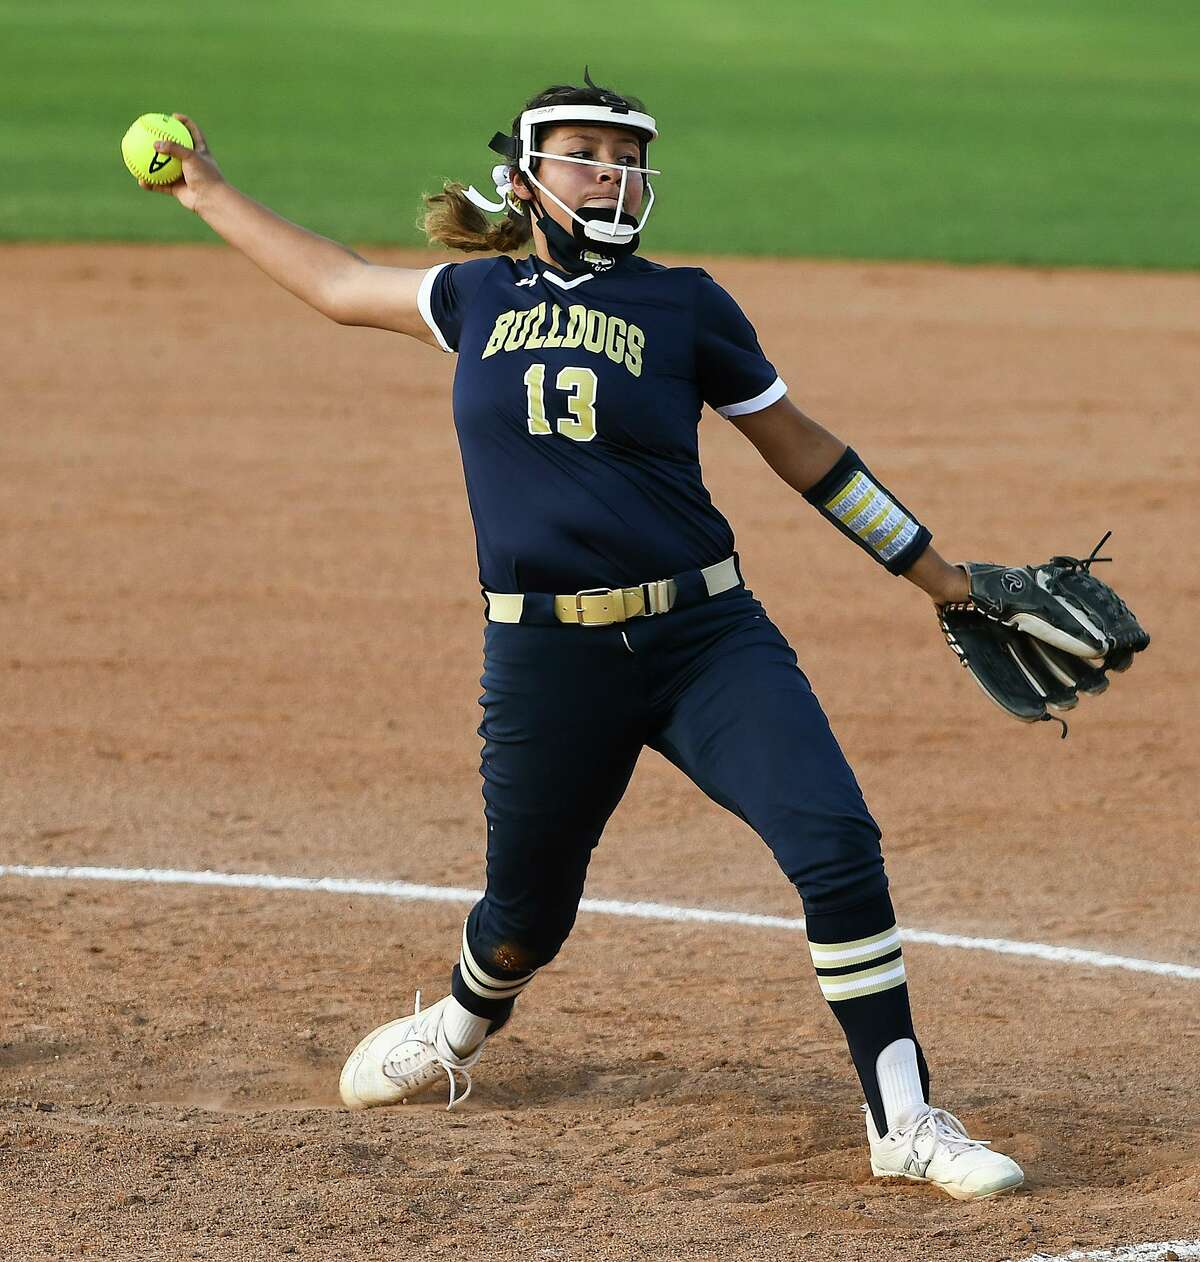 Alexander High School Krista Gamez pitches during a game against Zapata High School, Monday, Mar. 8, 2021, at the UISD Student Activity Complex.